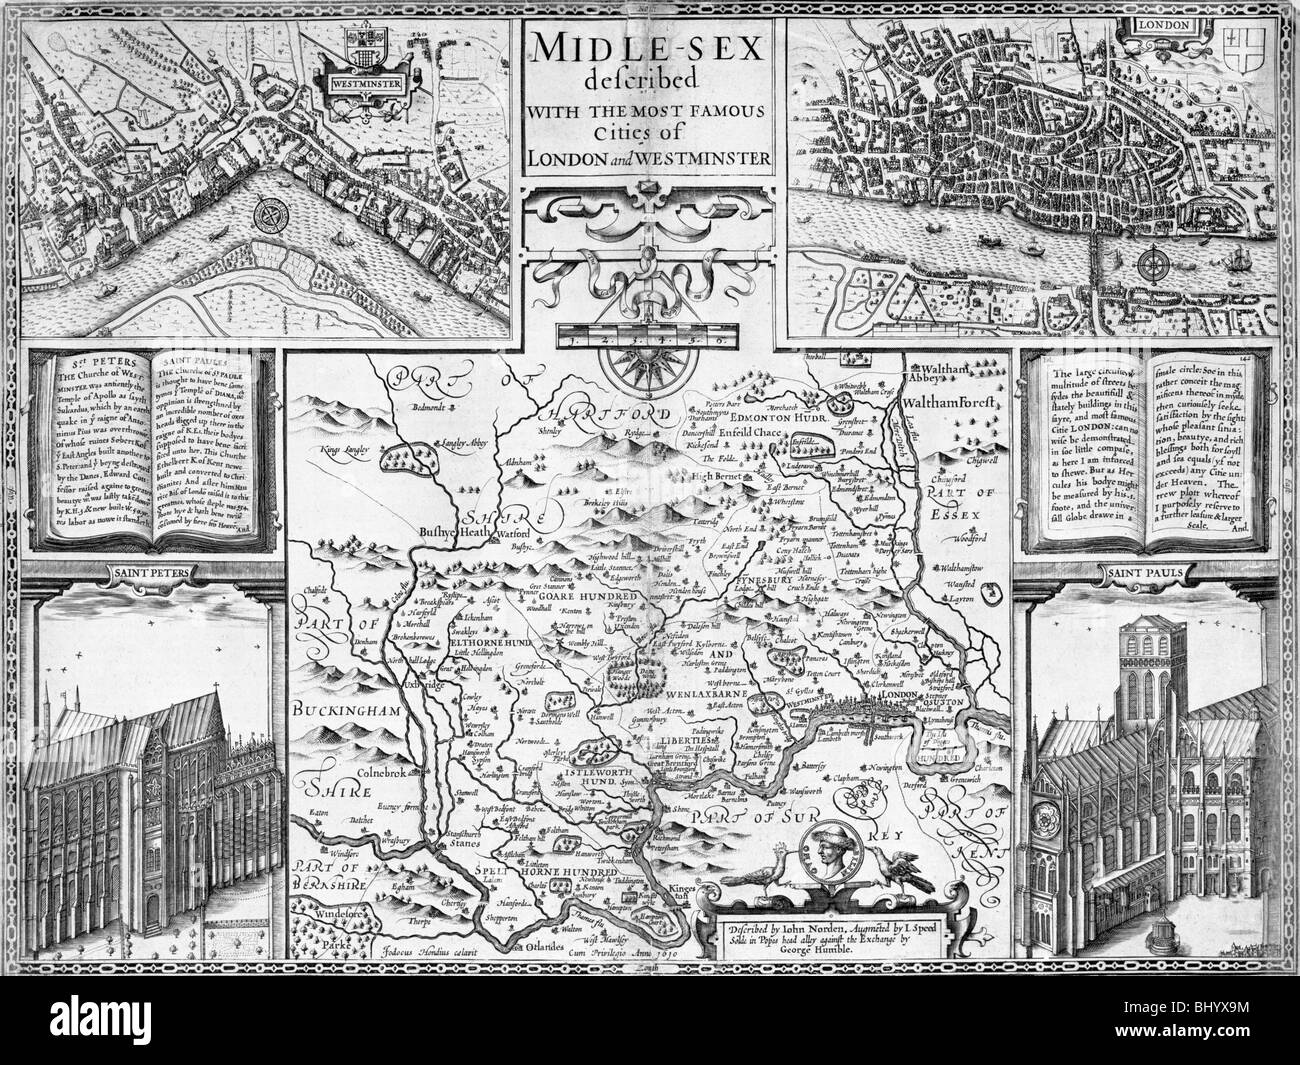 Map of London, Westminster and Middlesex, late 16th-early 17th century. Artist: John Speed - Stock Image